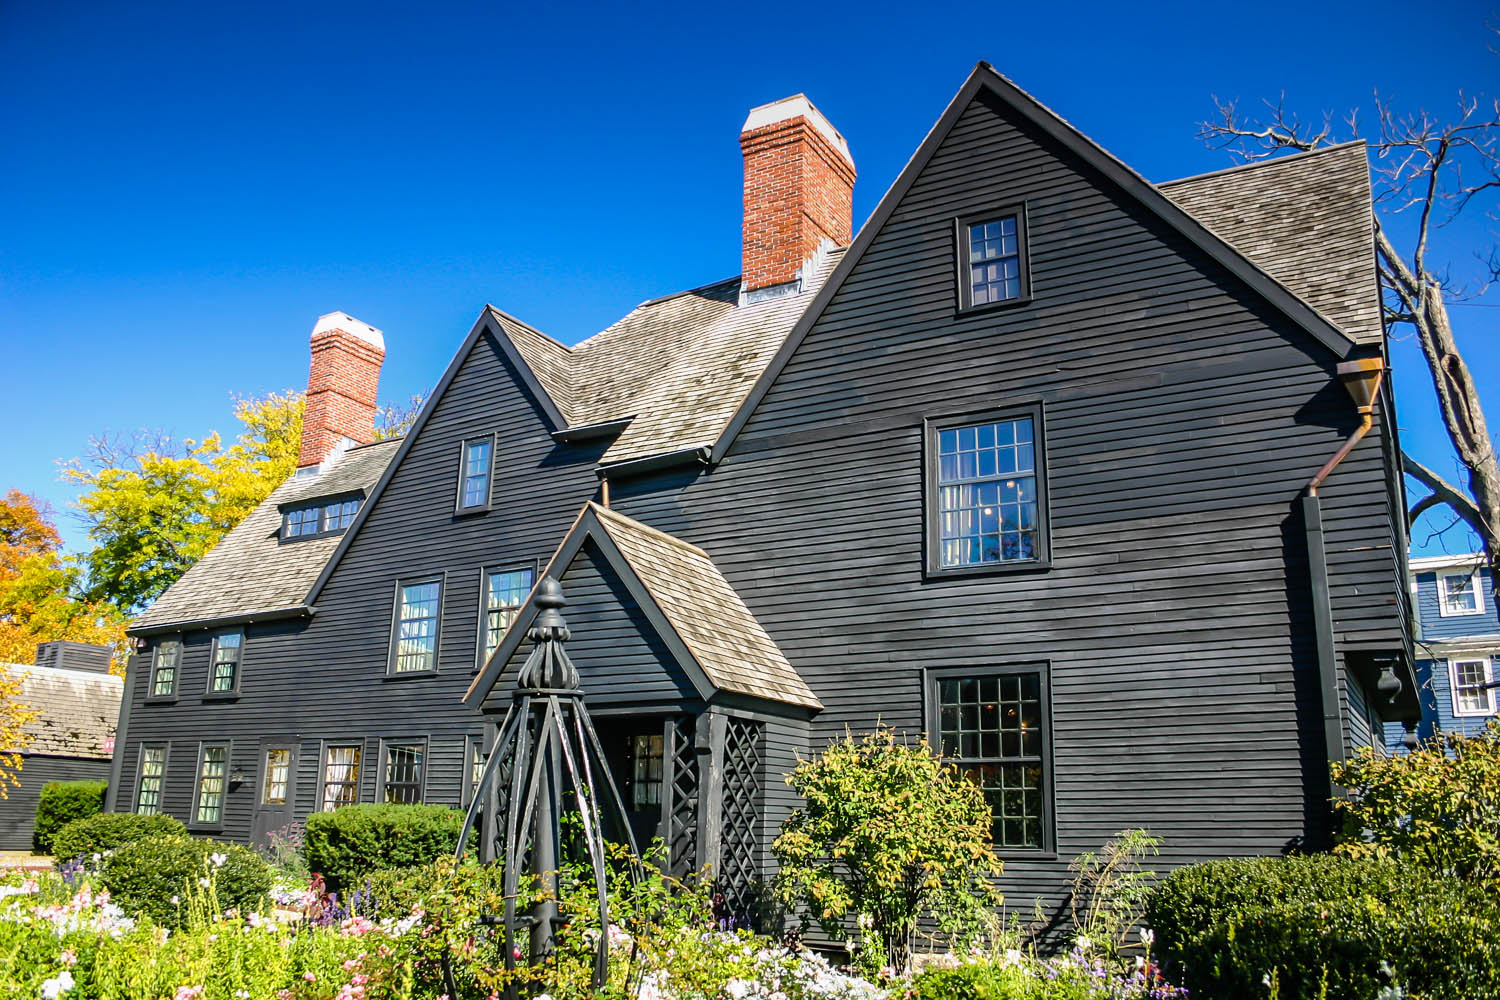 House of the Seven Gables | Salem, MA